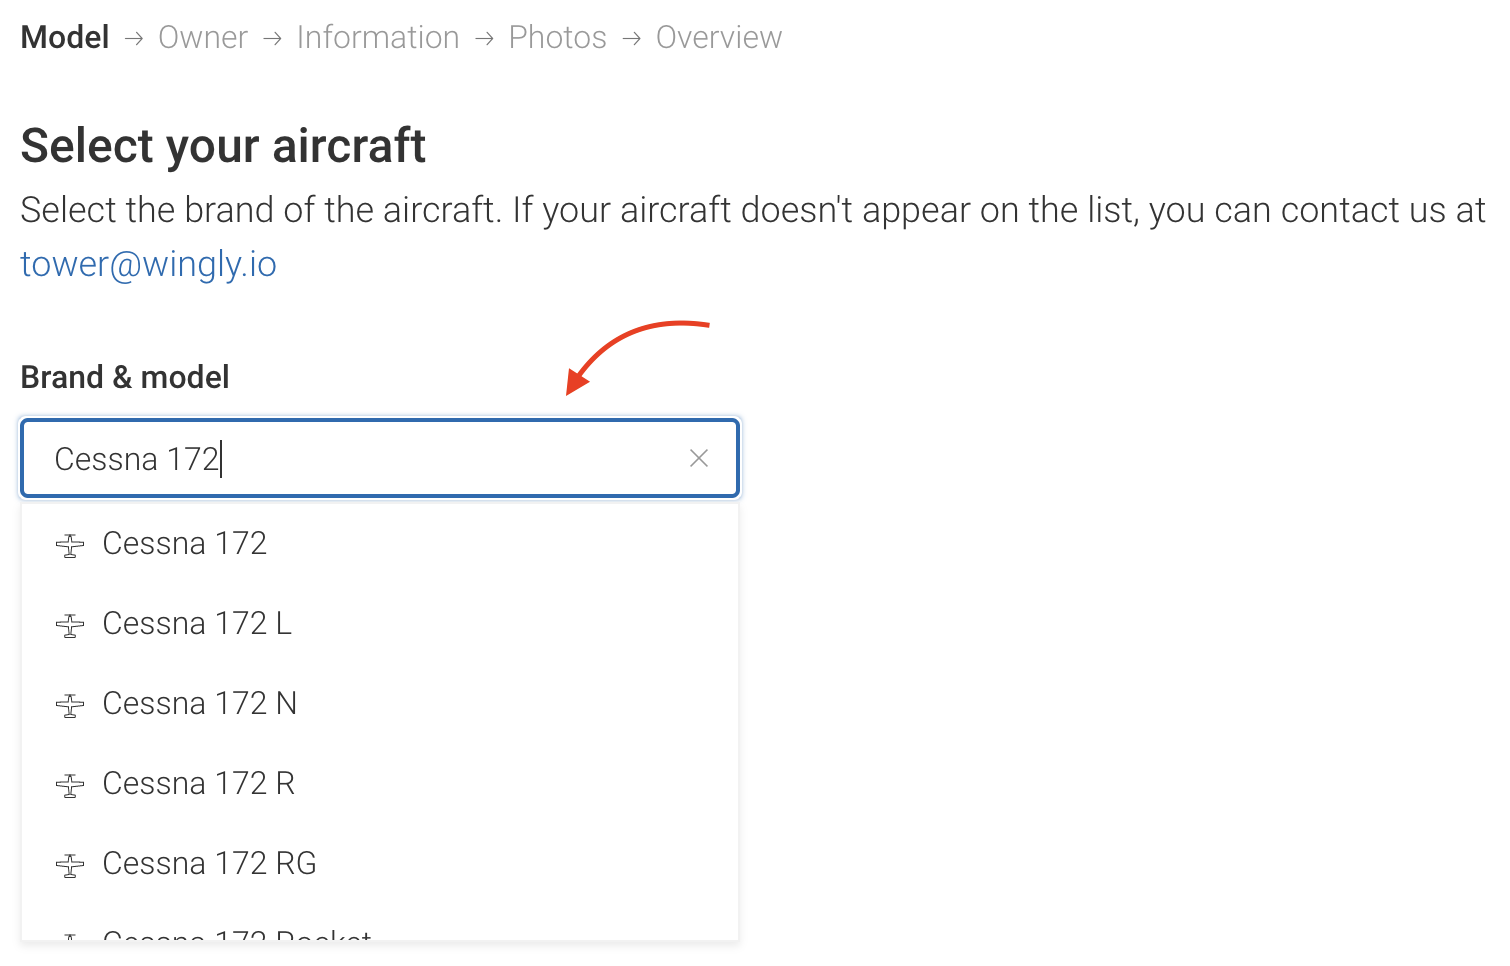 Input your aircraft's brand, followed by the model. Choose the most relevant option from the dropdown menu